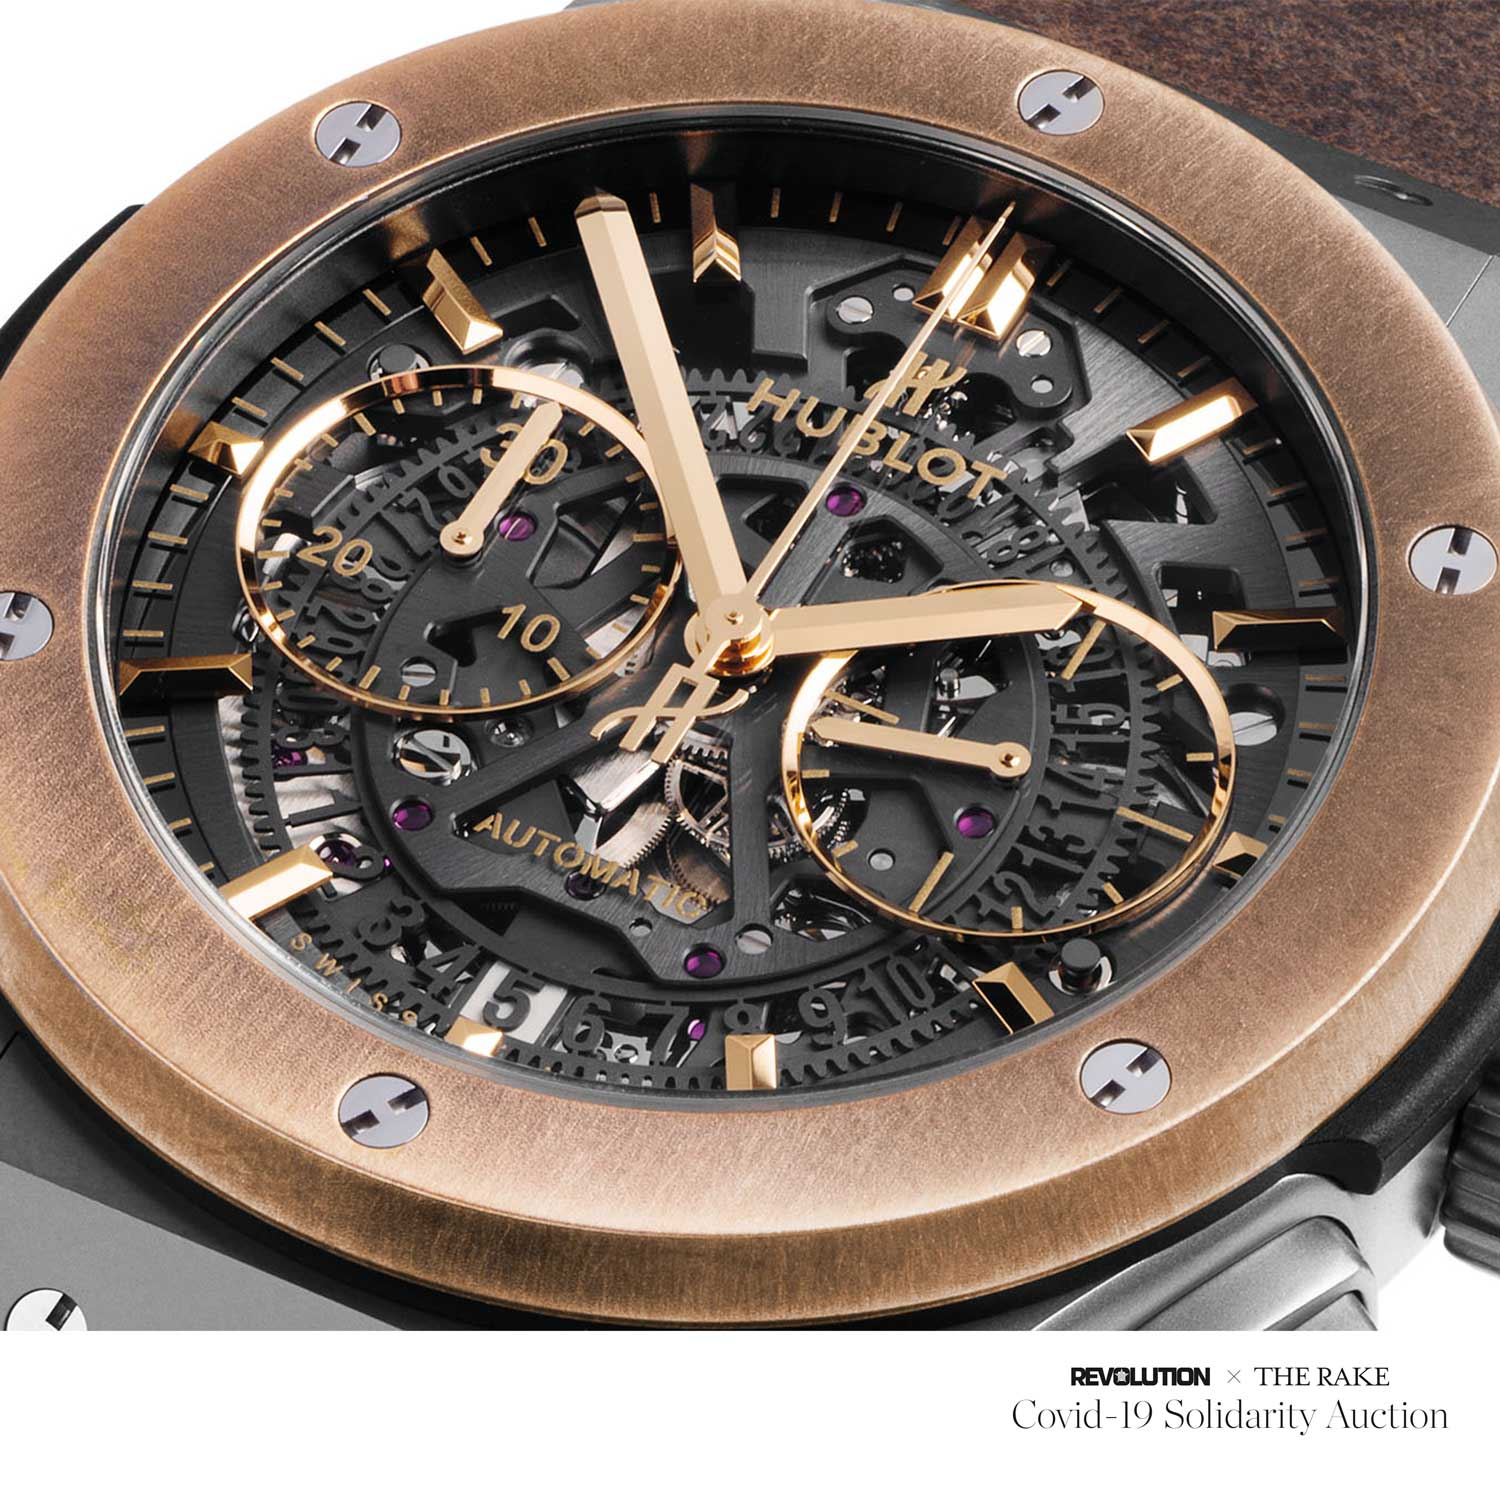 "Factory Prototype Hublot Aerofusion Chronograph ""Molon Labe"" titanium and bronze limited edition for The Rake"